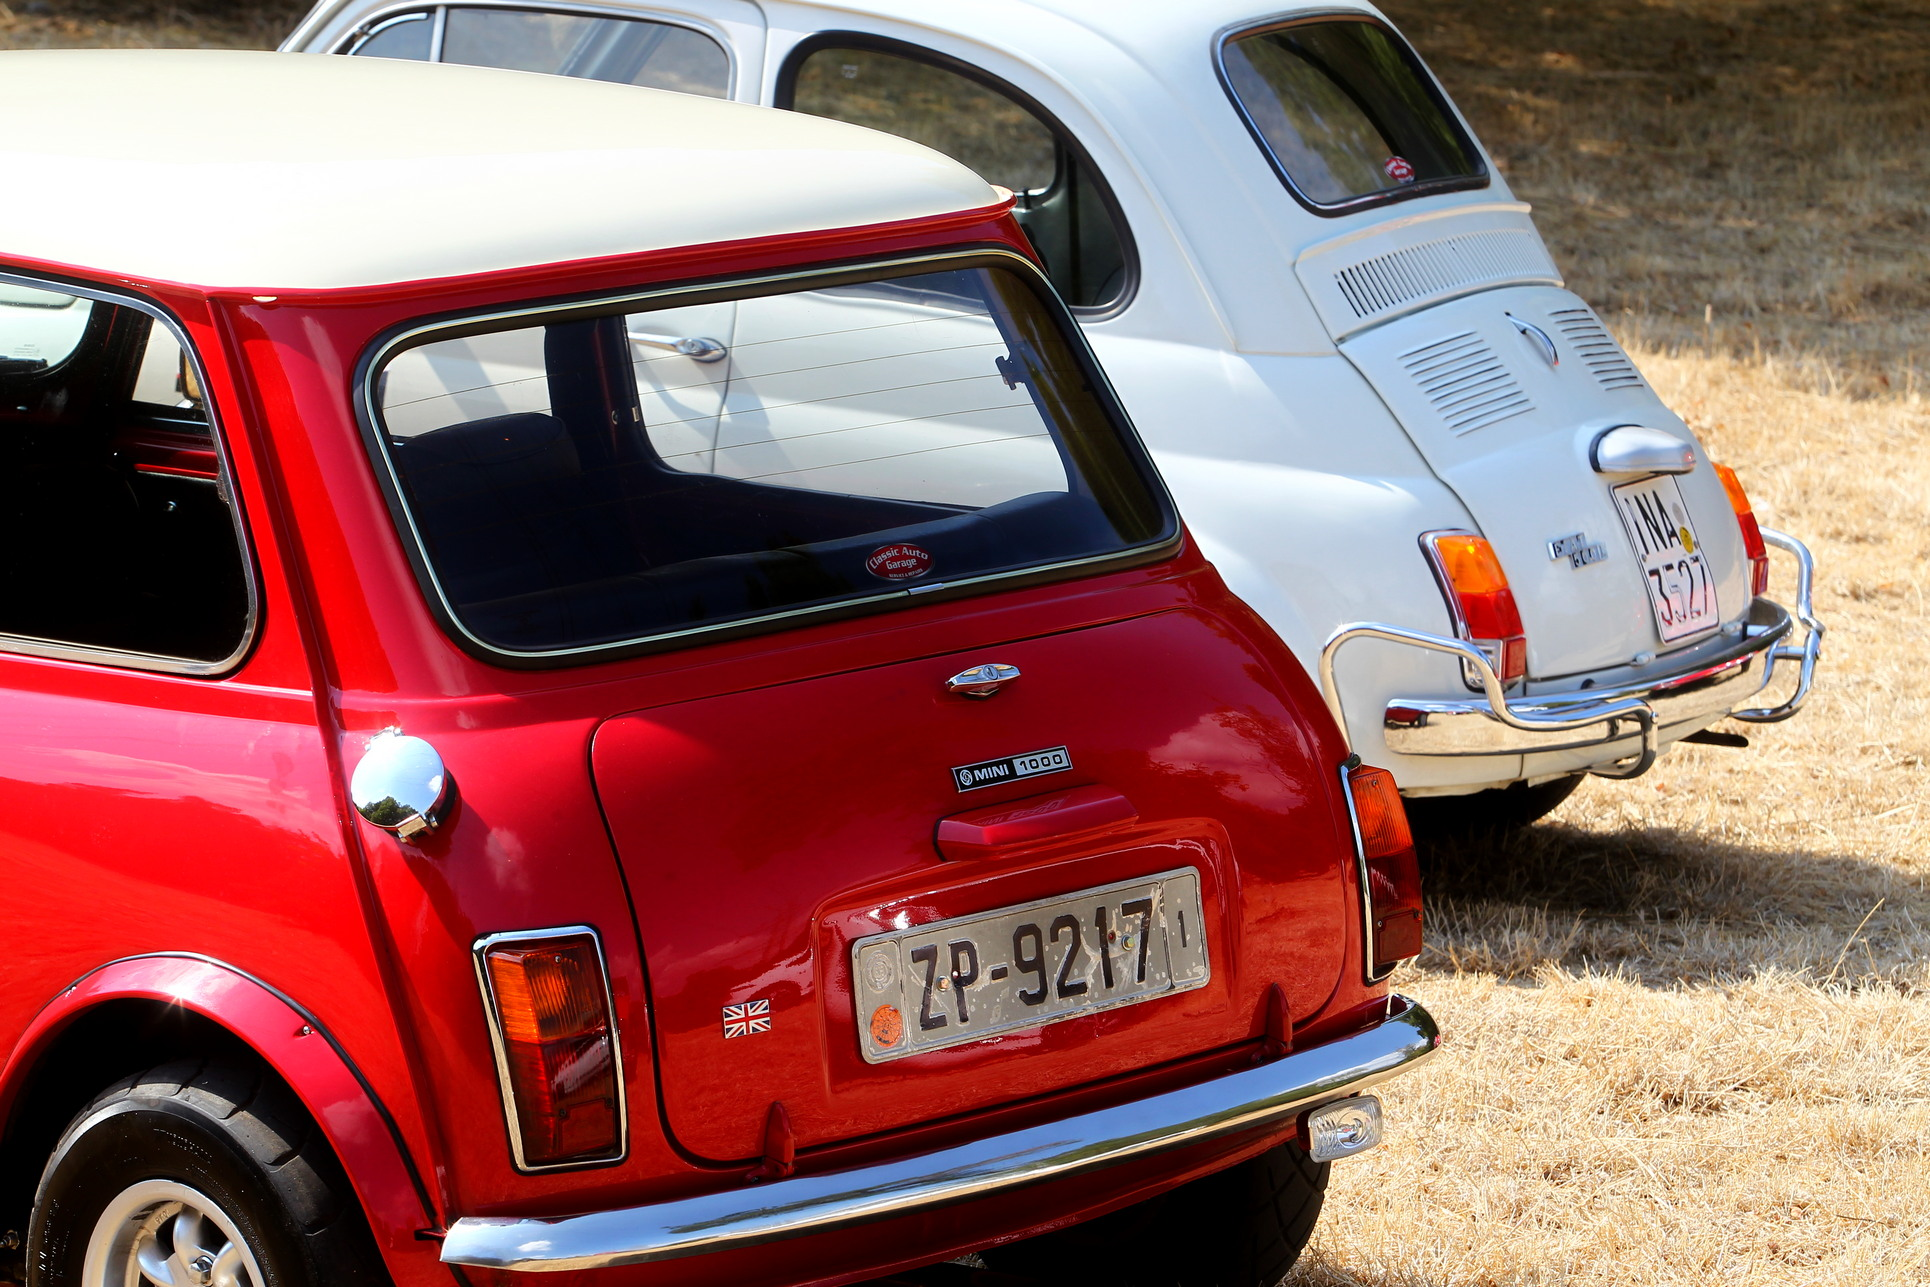 Fiat 500 - British Leyland Mini